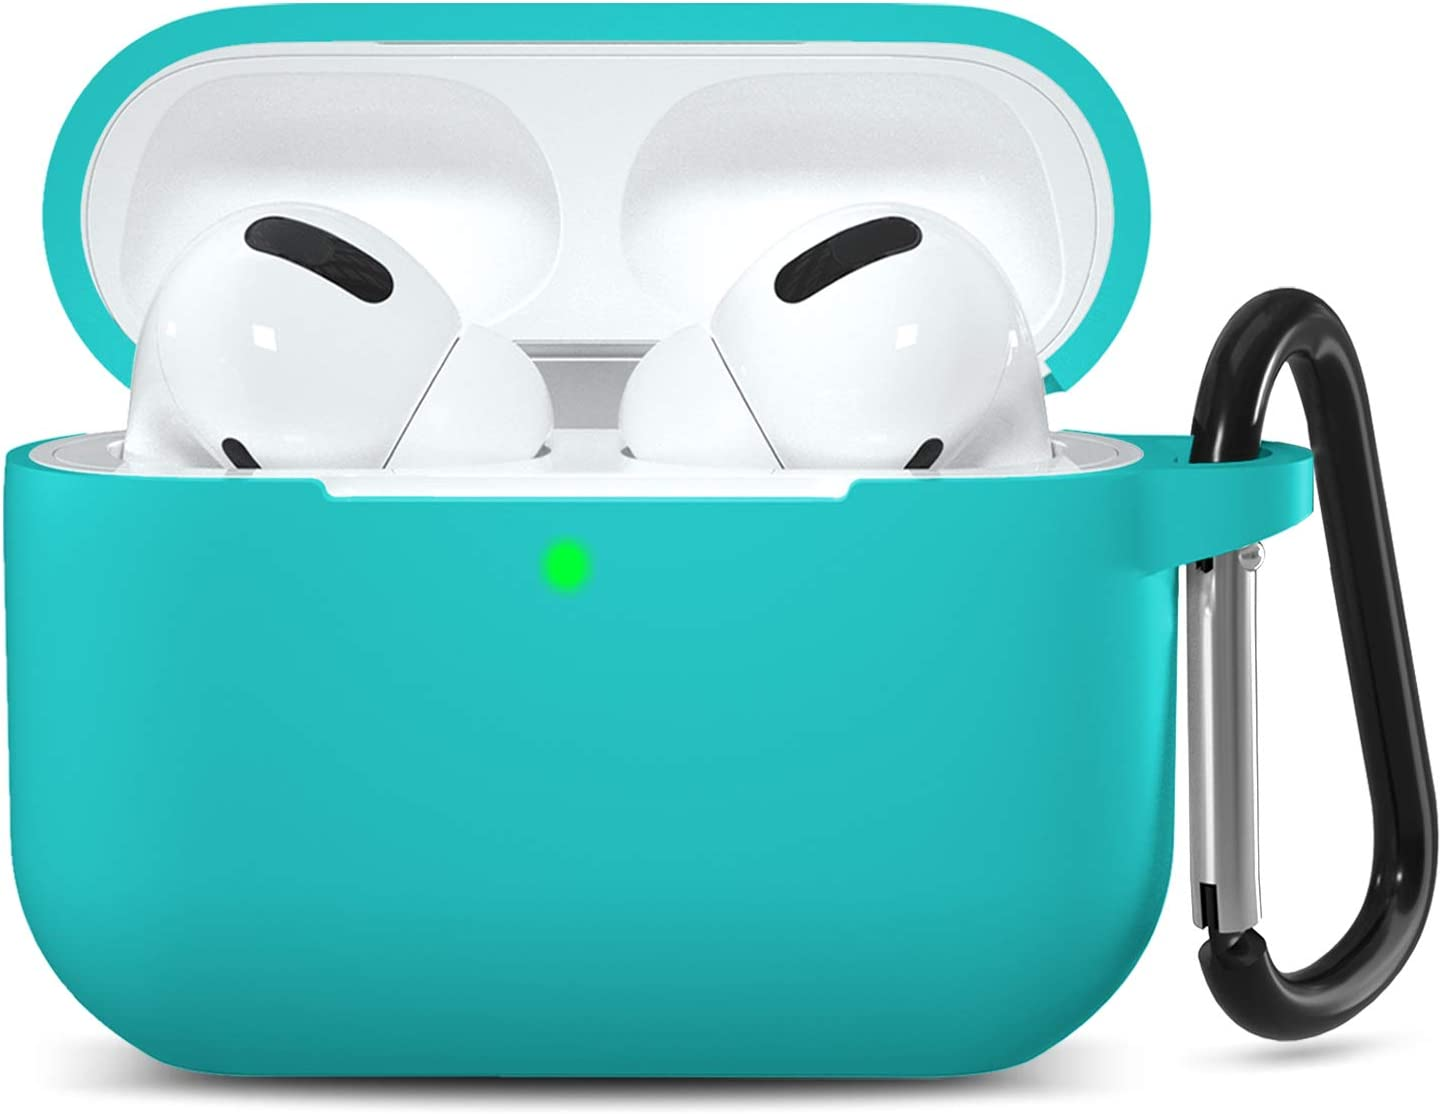 GEAK Compatible with AirPods Pro Case Cover [Front LED Visible], Shockproof Silicone Protective Case with Keychain for AirPods Pro 2019, Teal